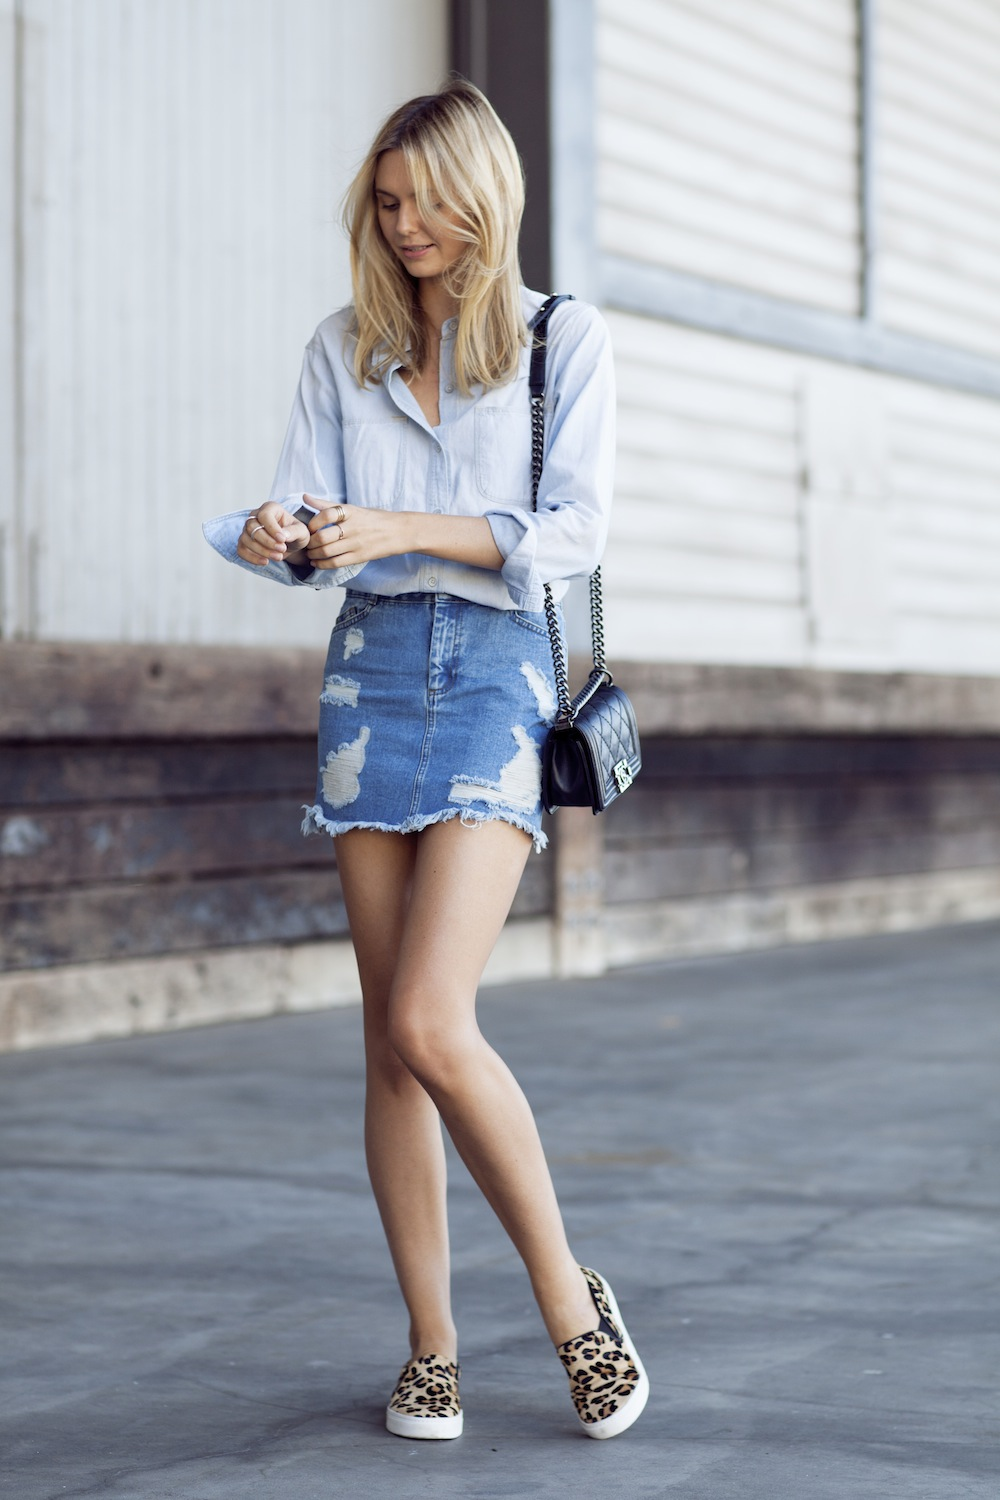 Jessica Wearing Asos denim skirt, Madewell Denim Shirt, Windsor Smith Slides, Chanel Bag